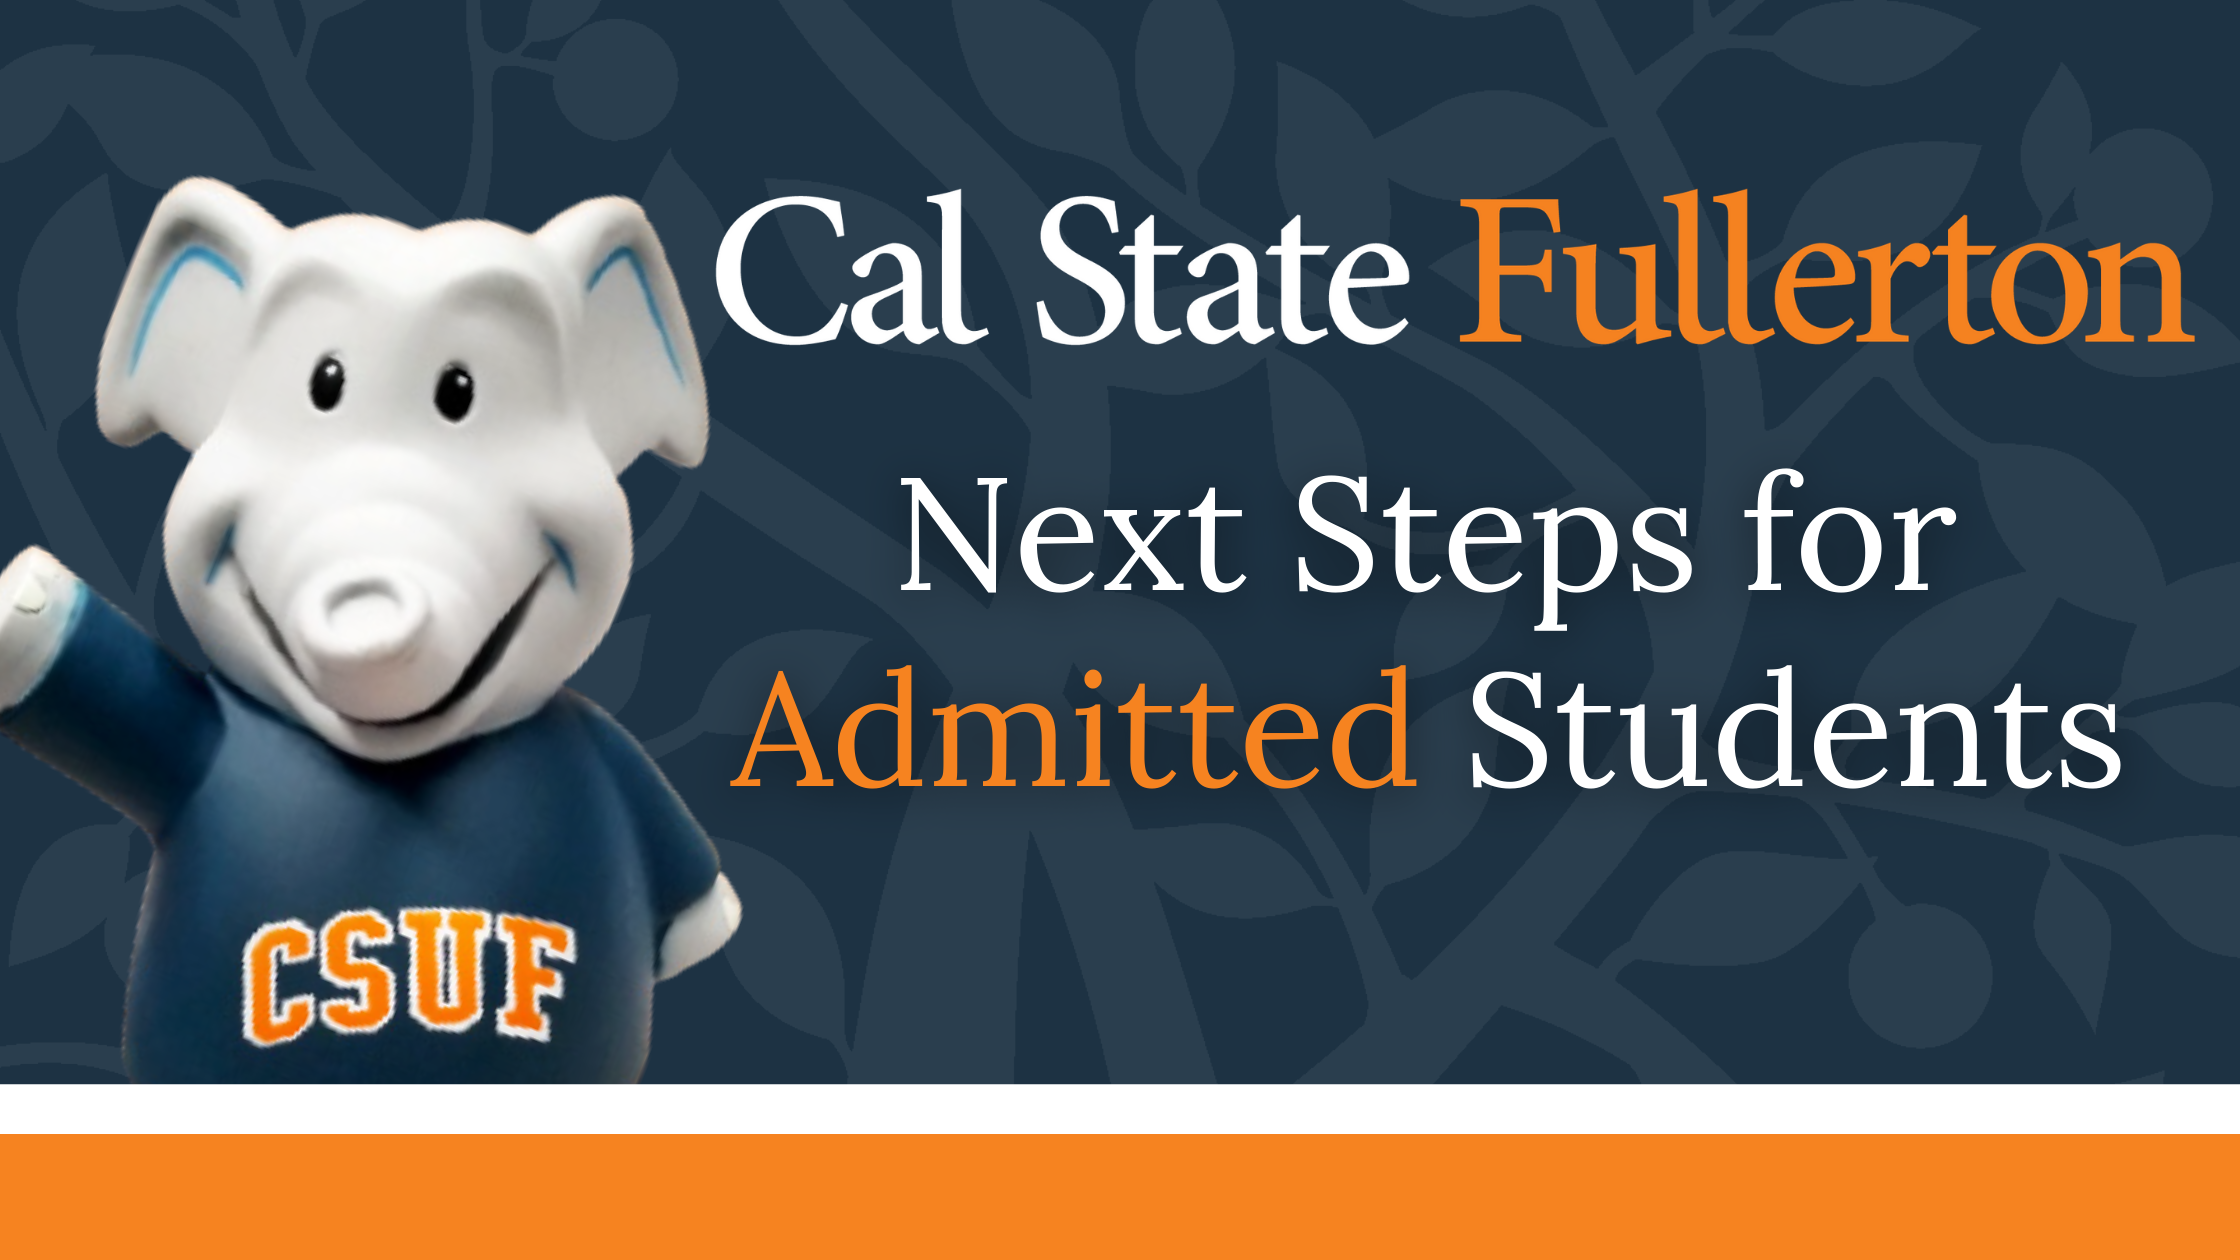 Next Steps for Admitted Students